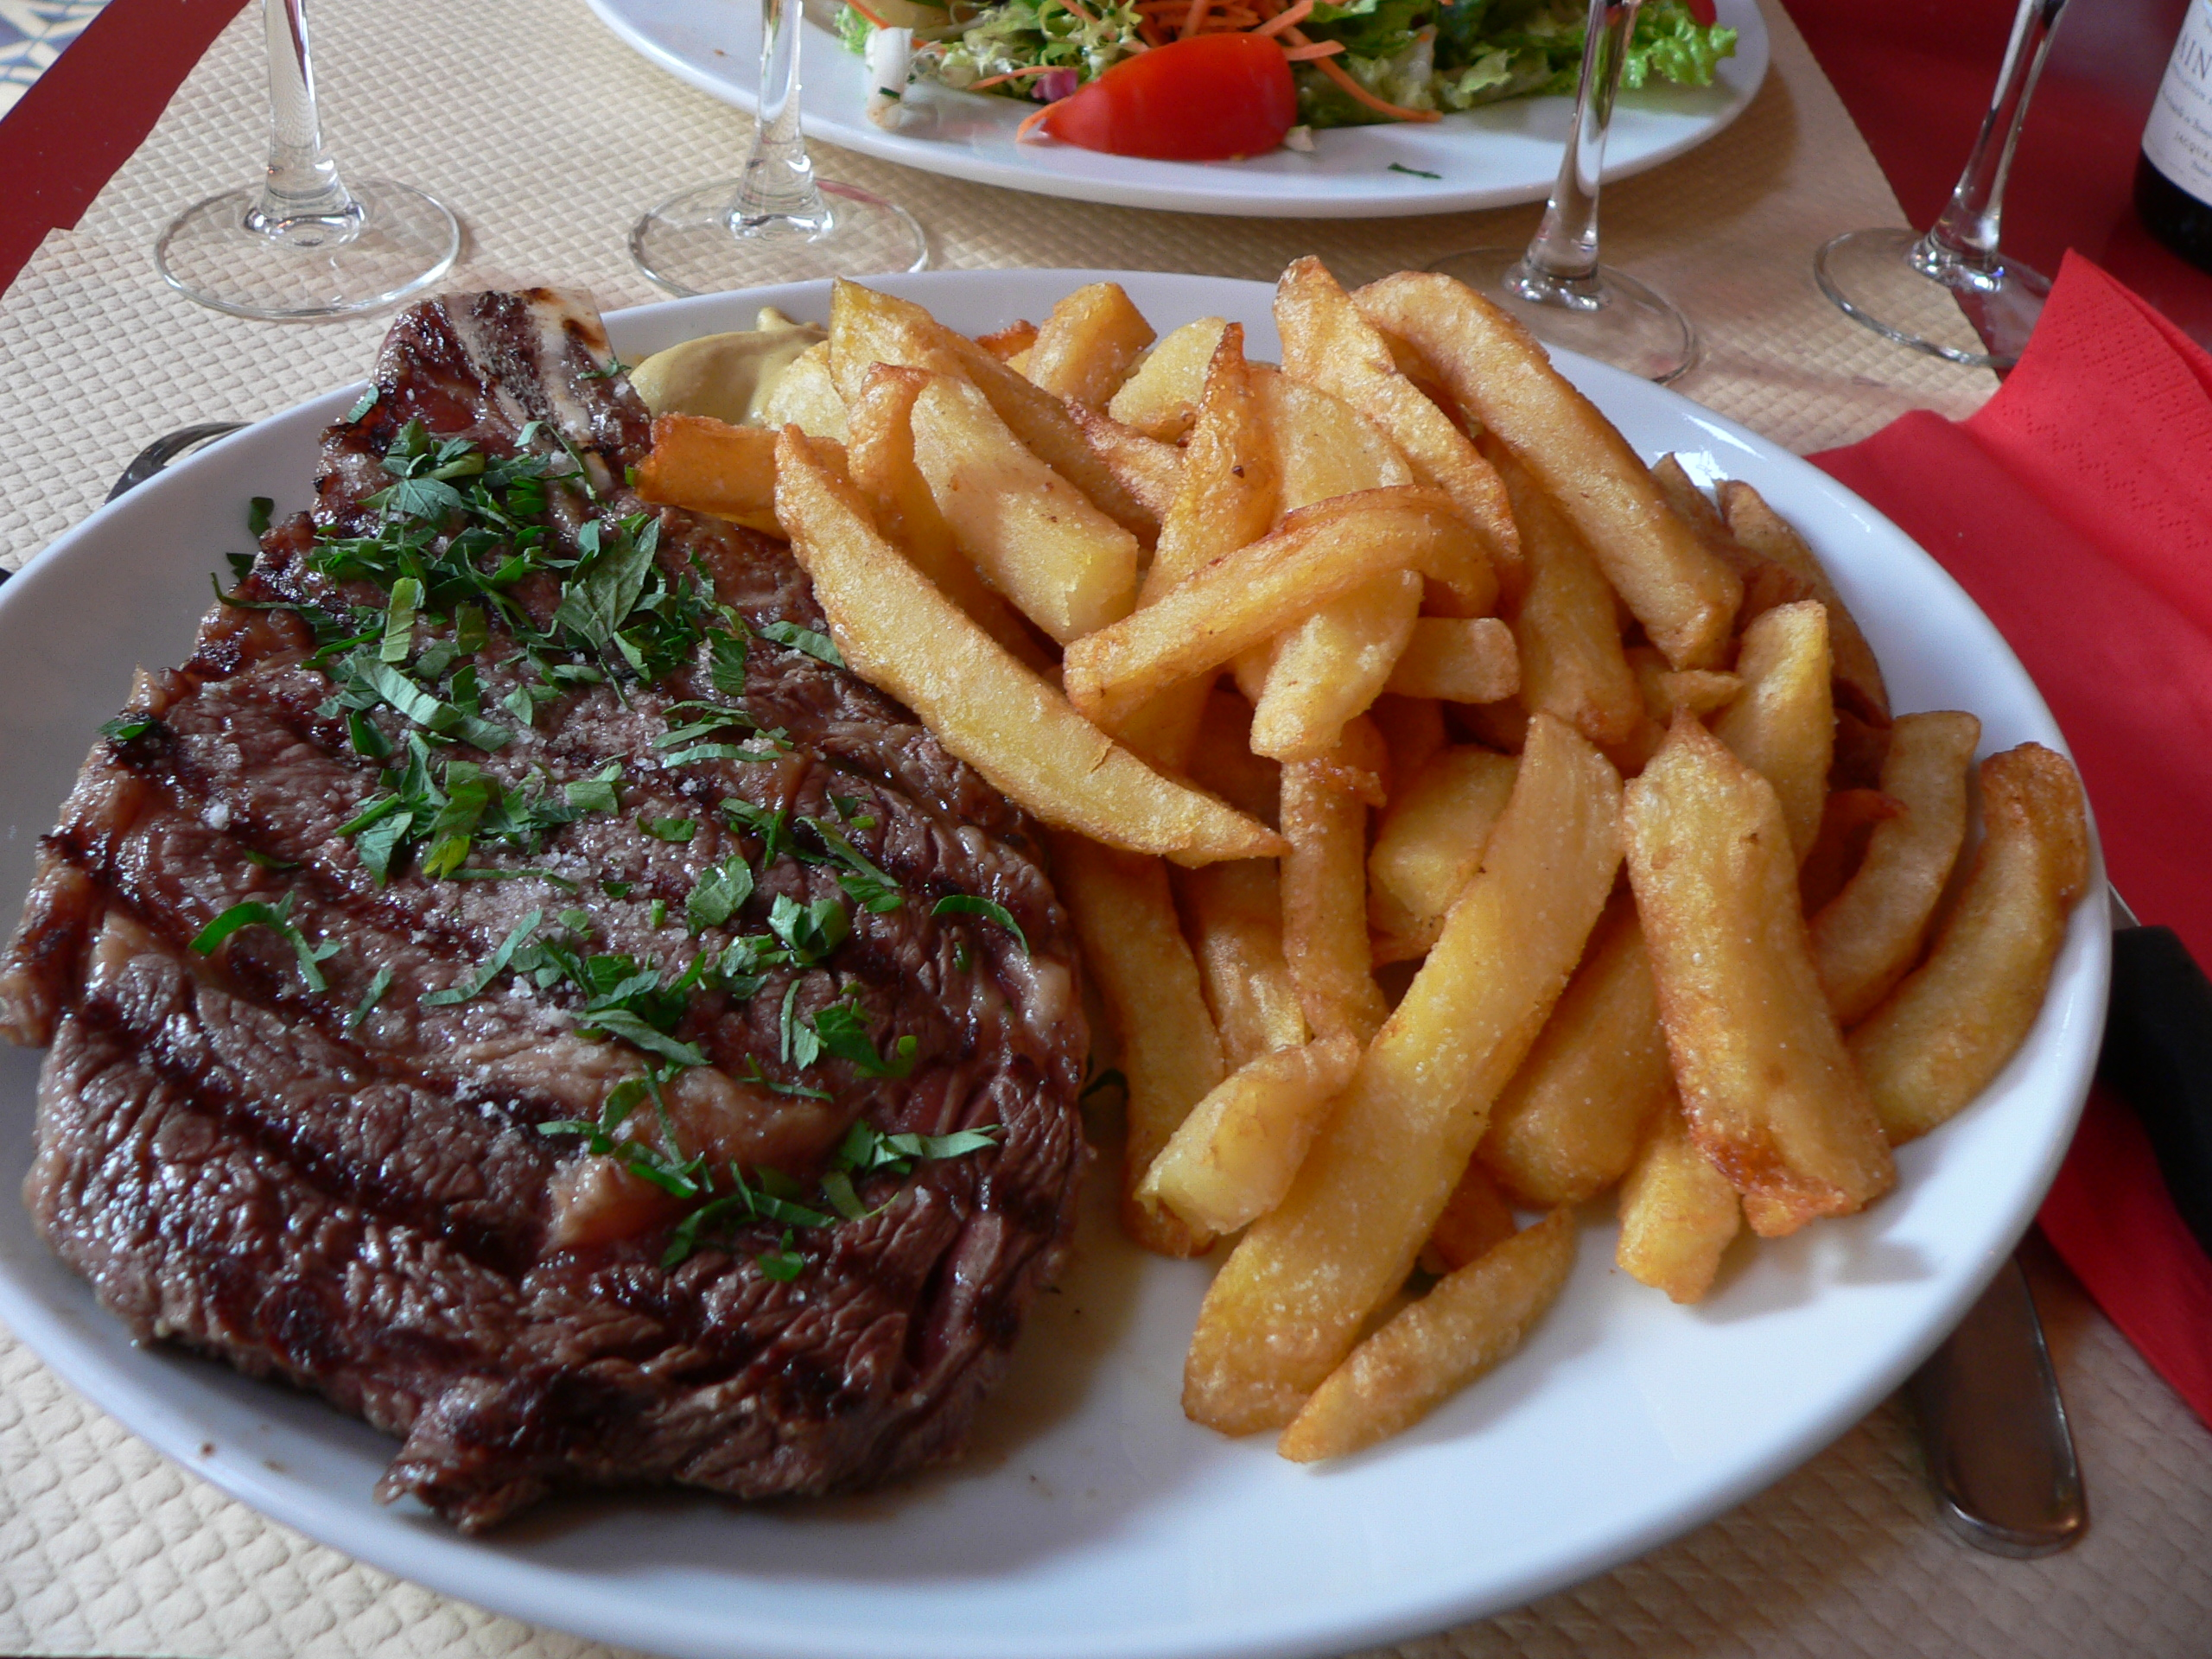 File cote de boeuf wikimedia commons for Artistic argentinean cuisine